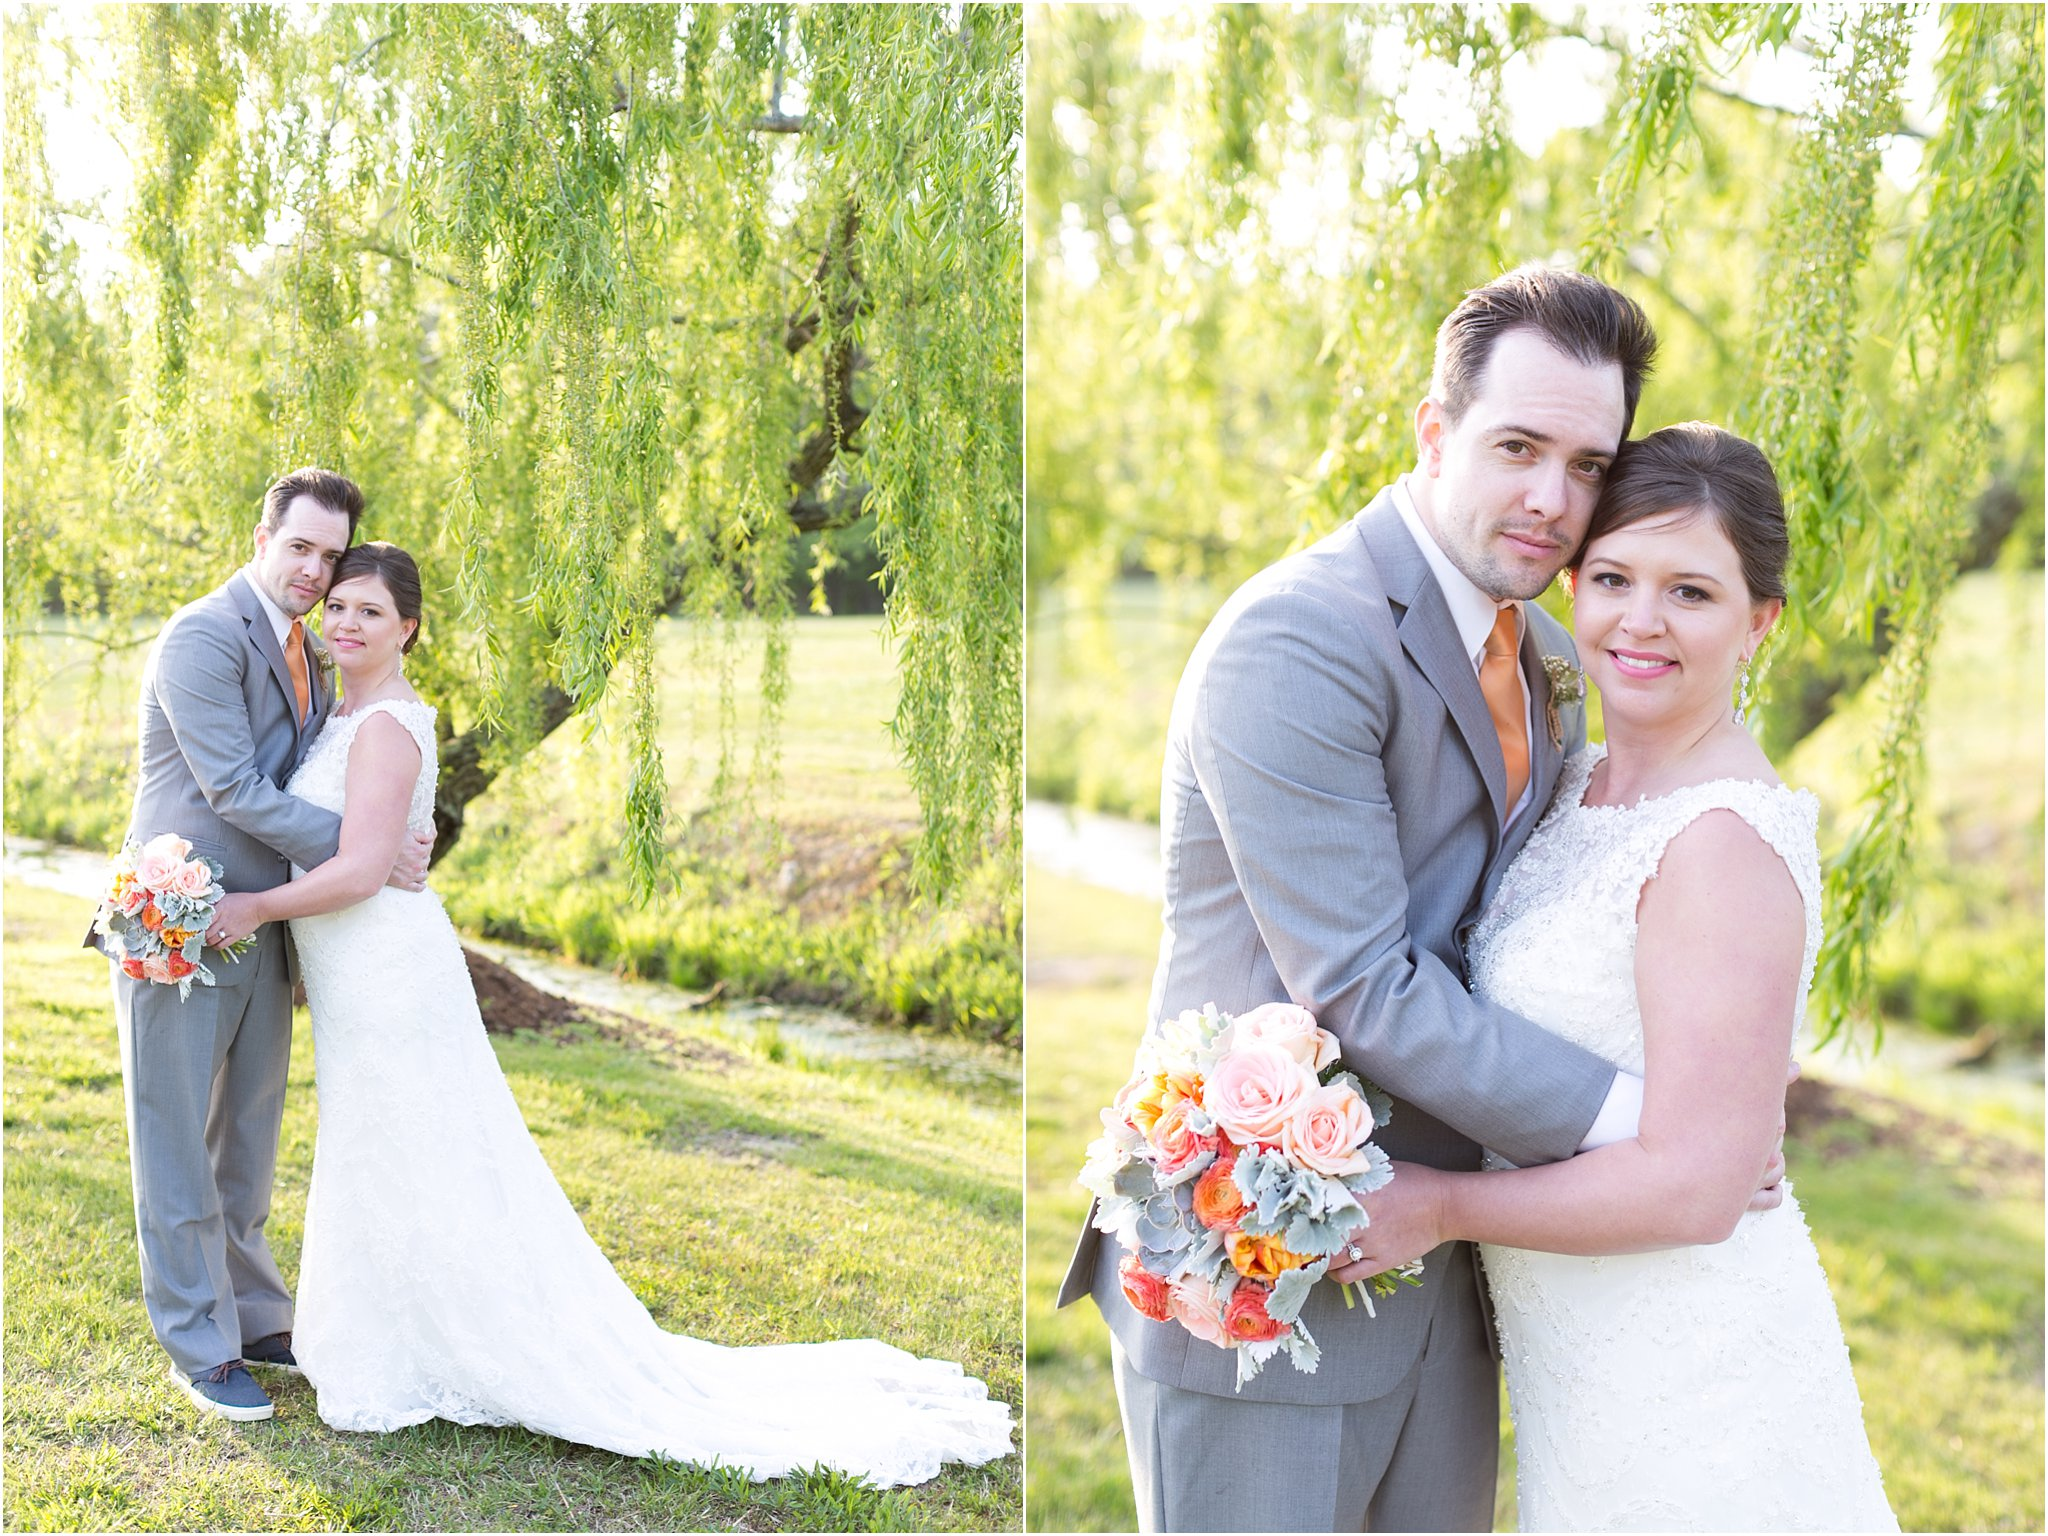 jessica_ryan_photography_holly_ridge_manor_wedding_roost_flowers_jamie_leigh_events_dhalia_edwards_candid_vibrant_wedding_colors_1330